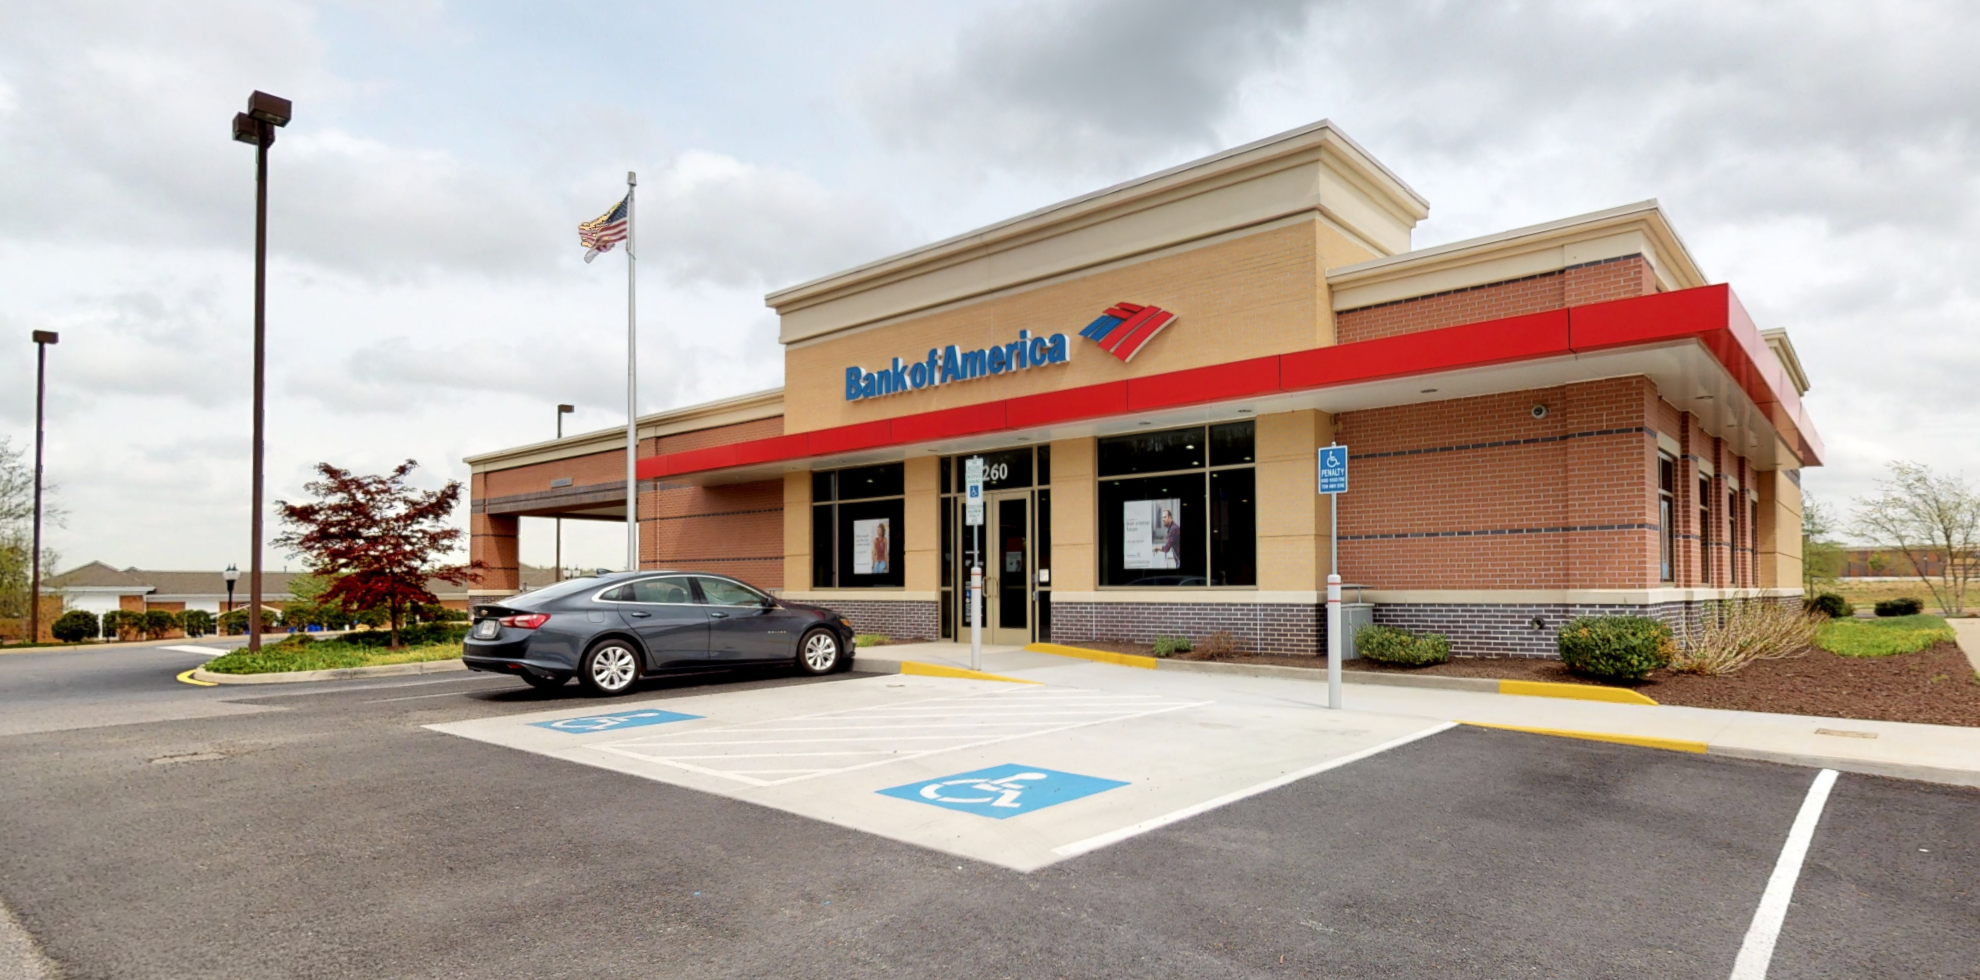 Bank of America financial center with drive-thru ATM   260 Schofield Dr, Midlothian, VA 23113